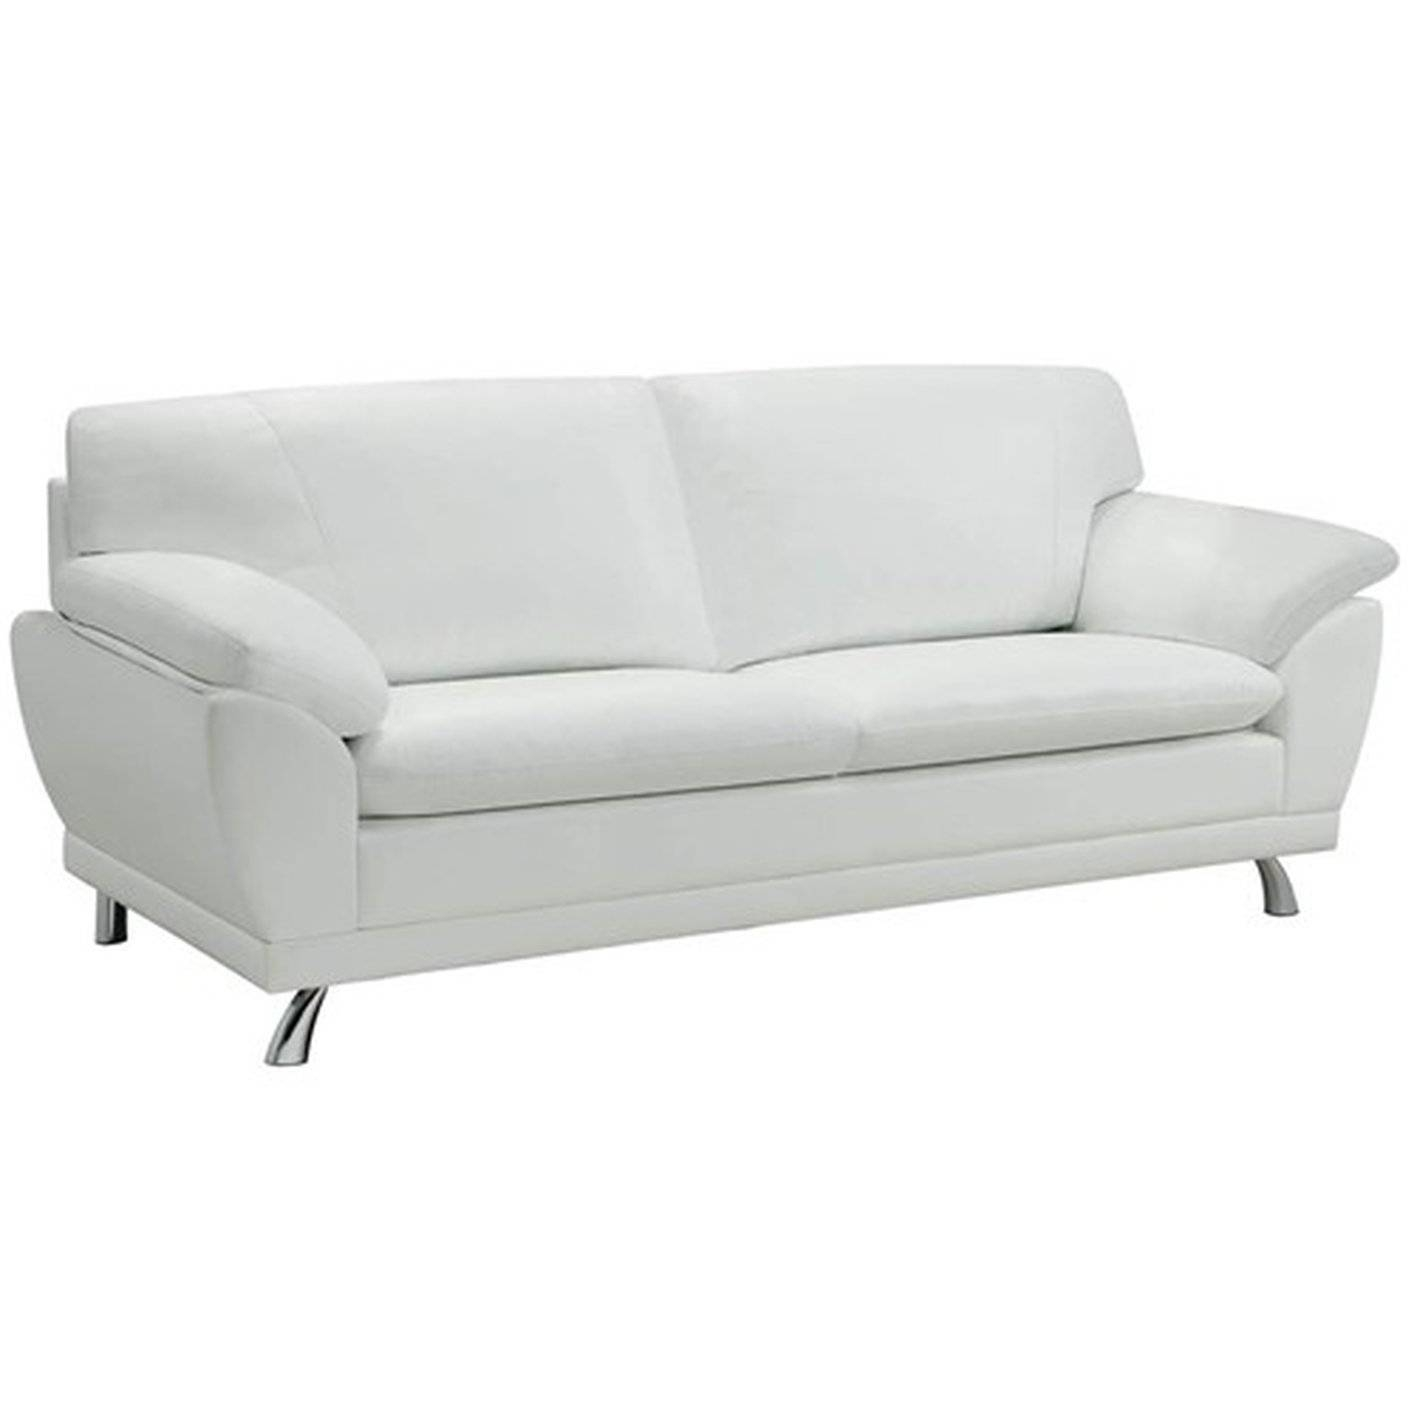 Robyn White Leather Sofa - Steal-A-Sofa Furniture Outlet Los throughout White Leather Sofas (Image 18 of 30)